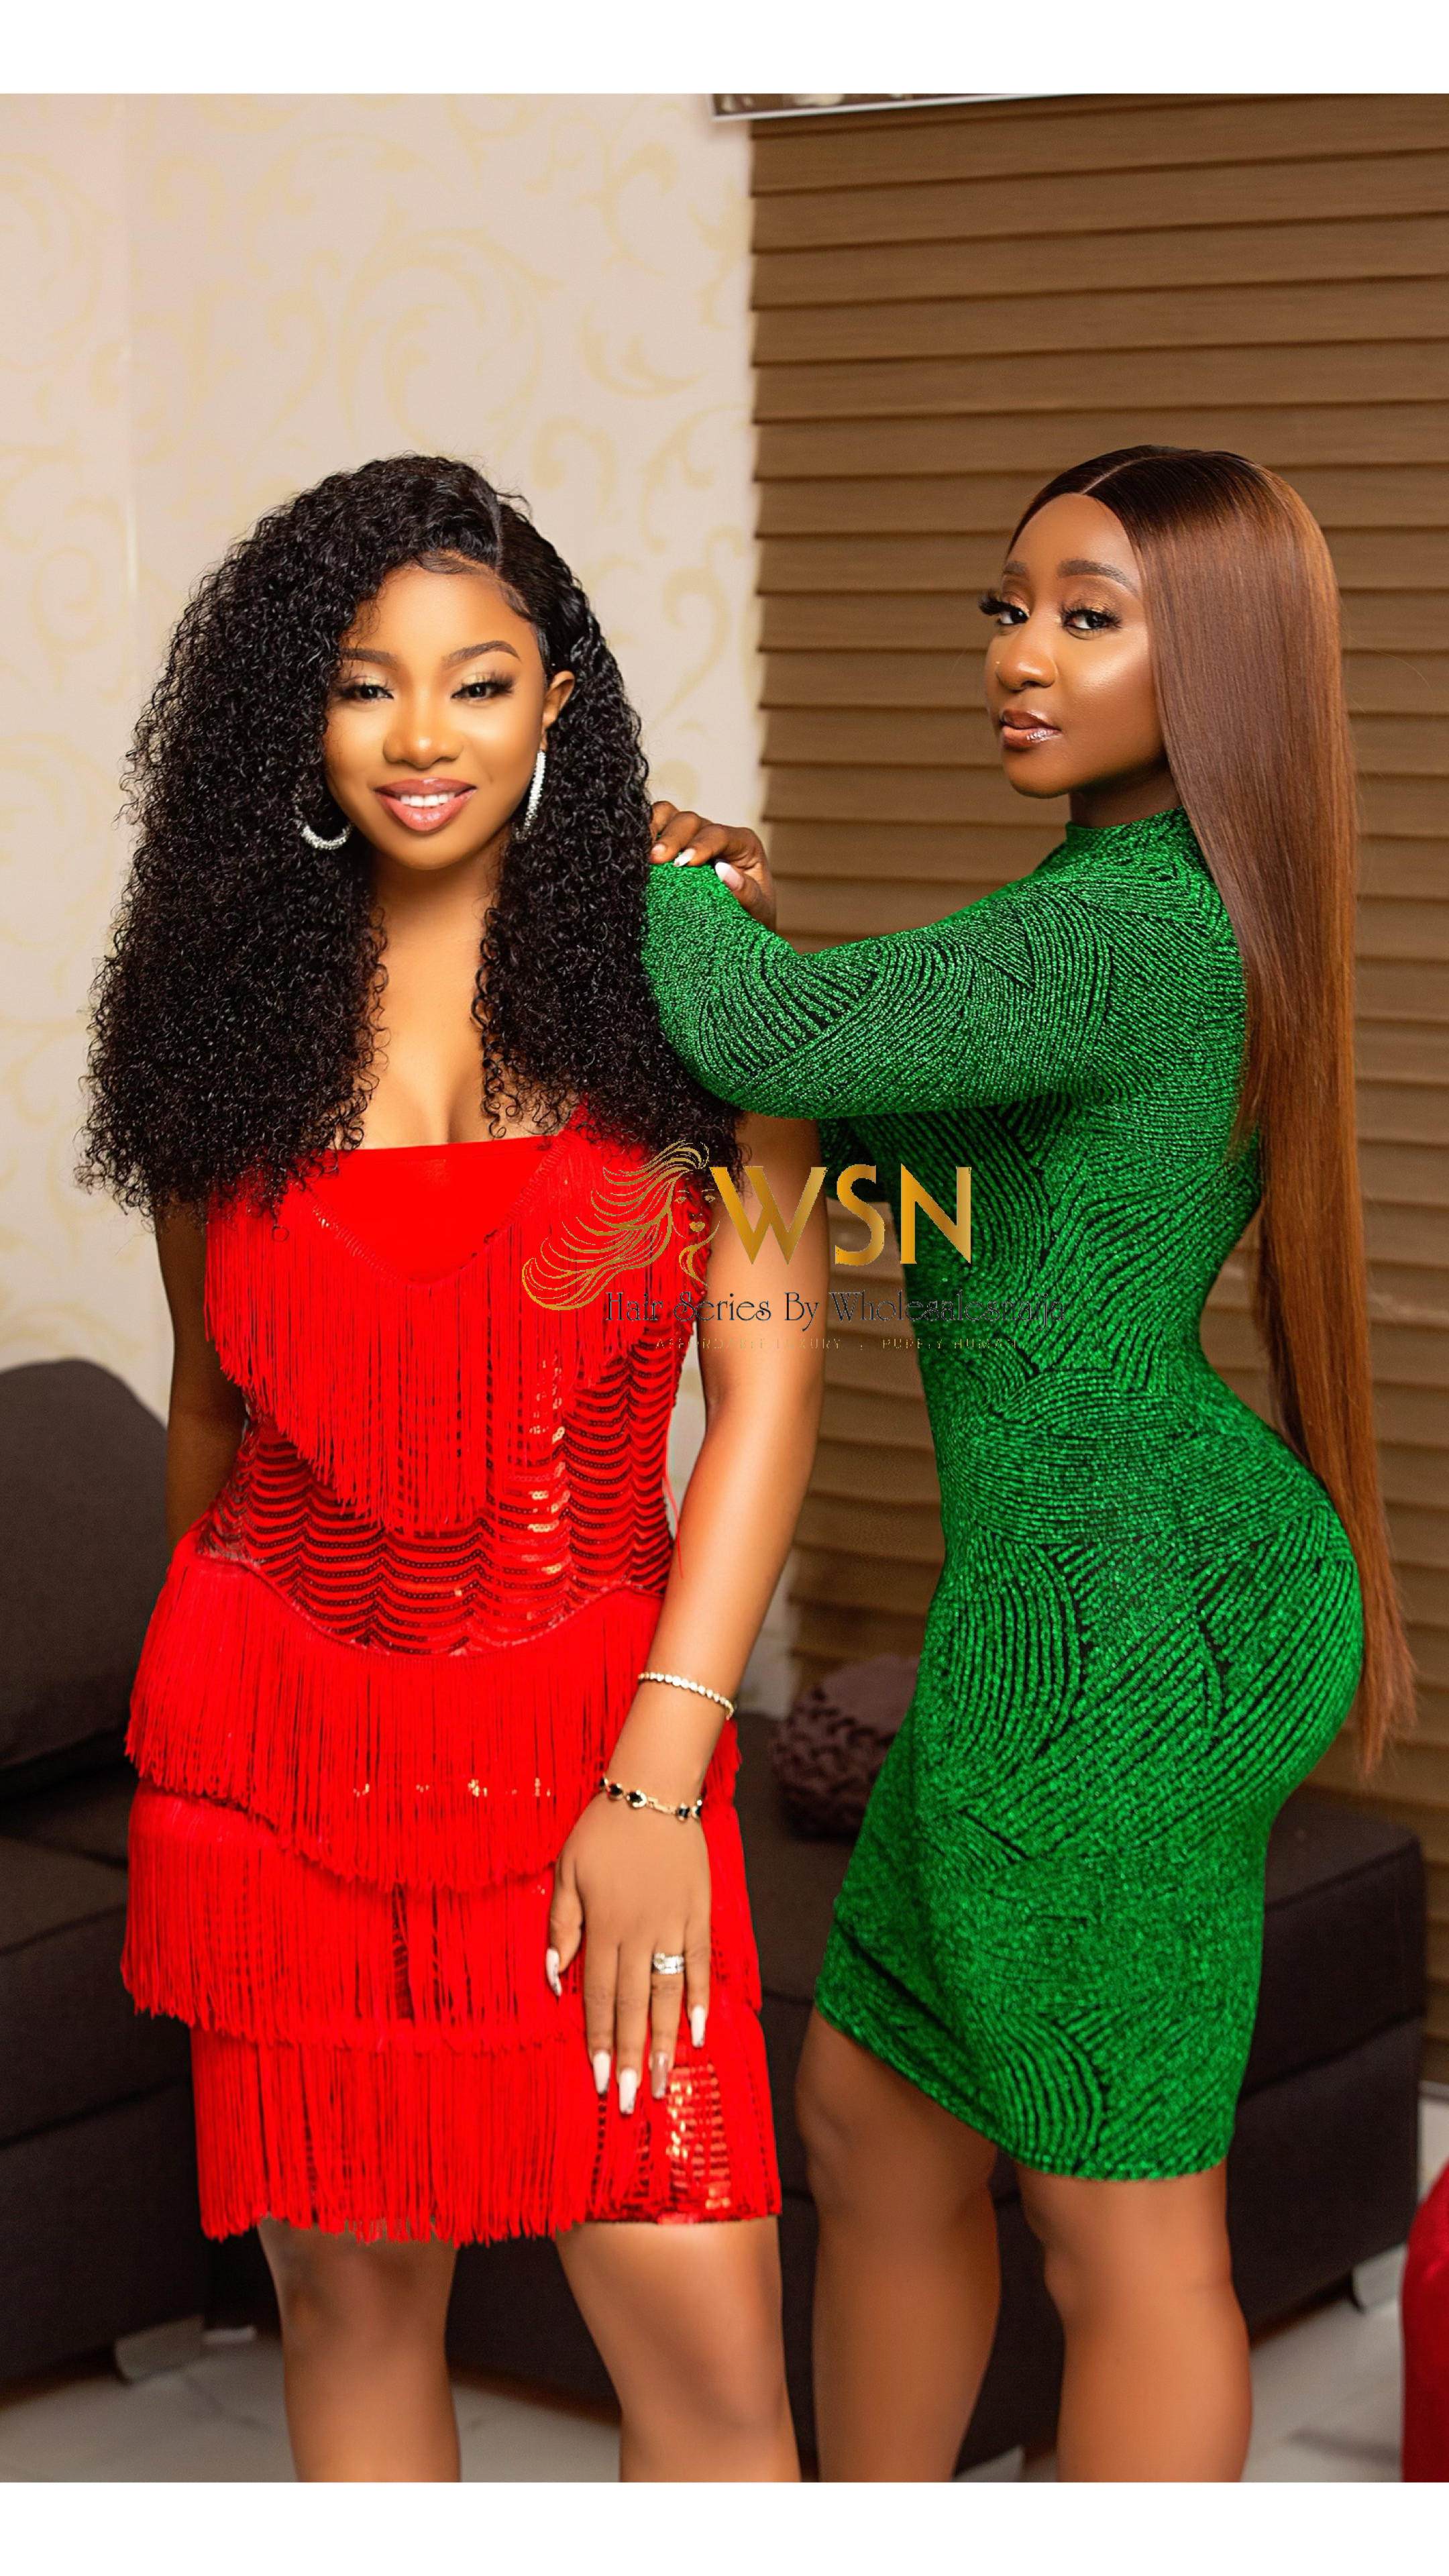 Nigeria?s No 1 Weaves and Wigs Brand, Wholesalesnaija Signs Ini Edo and Mocheddah as Brand Ambassadors